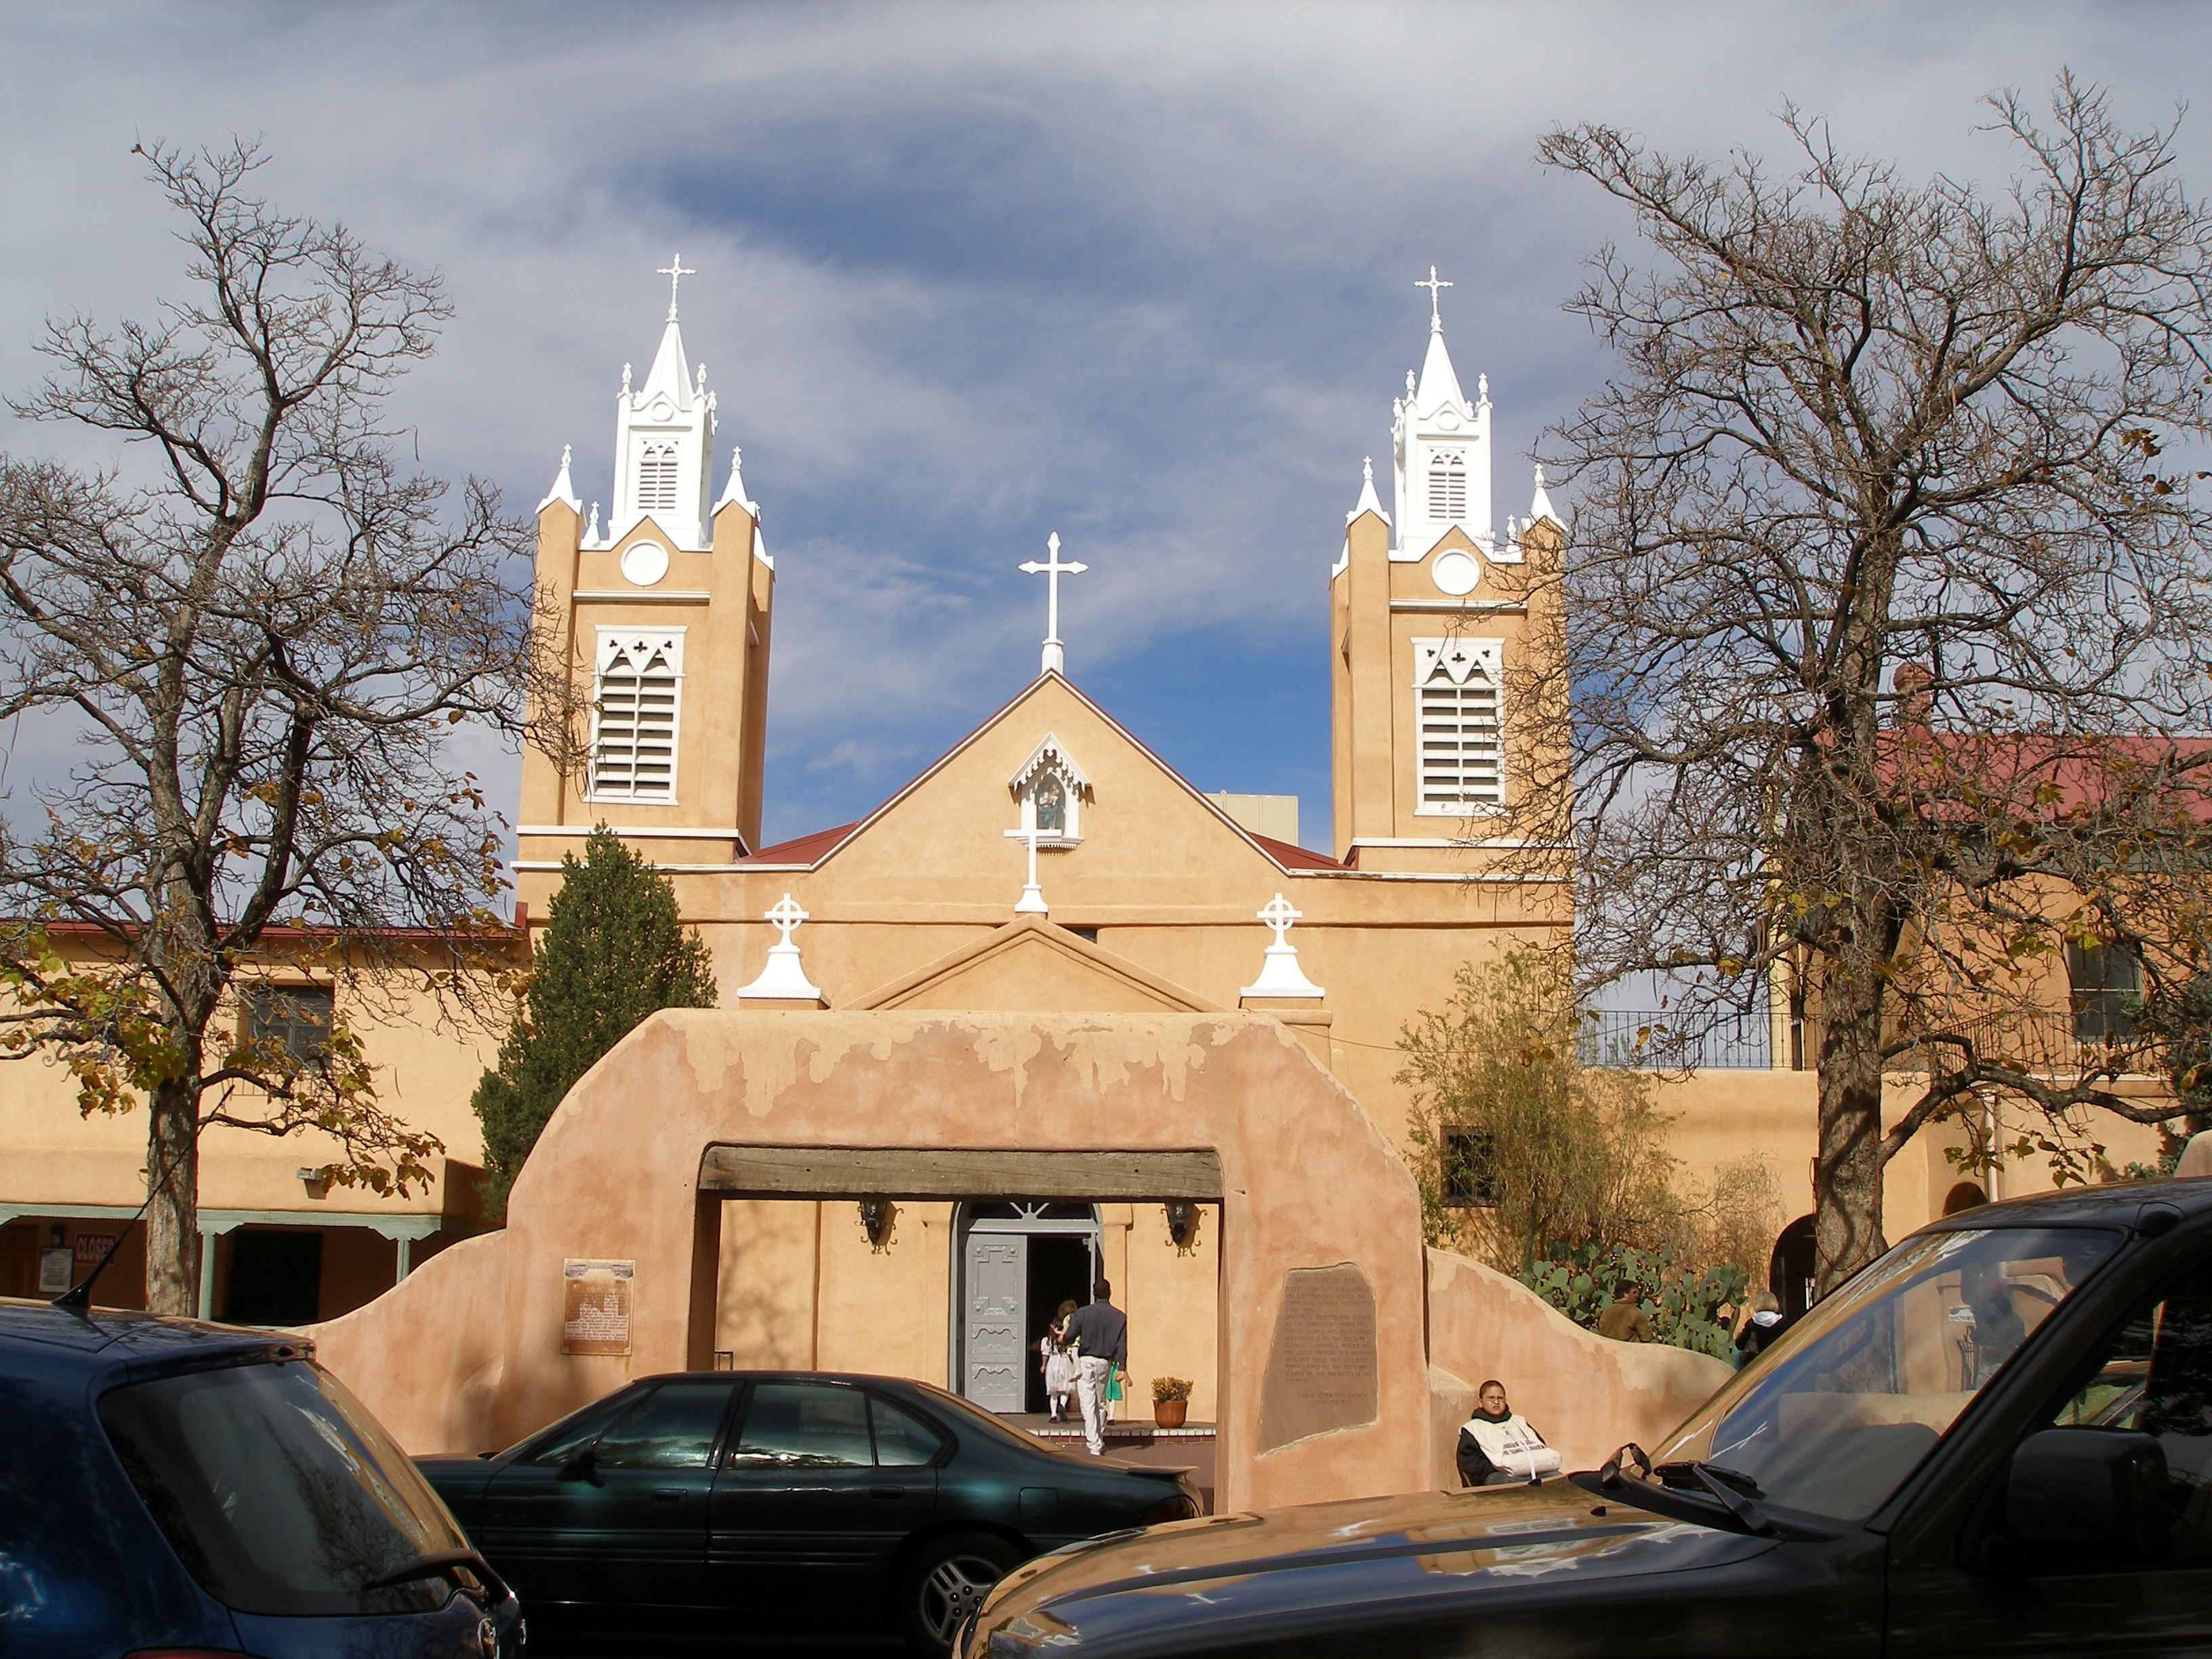 The Historic Old Town Church in Old Town Albuquerque. You